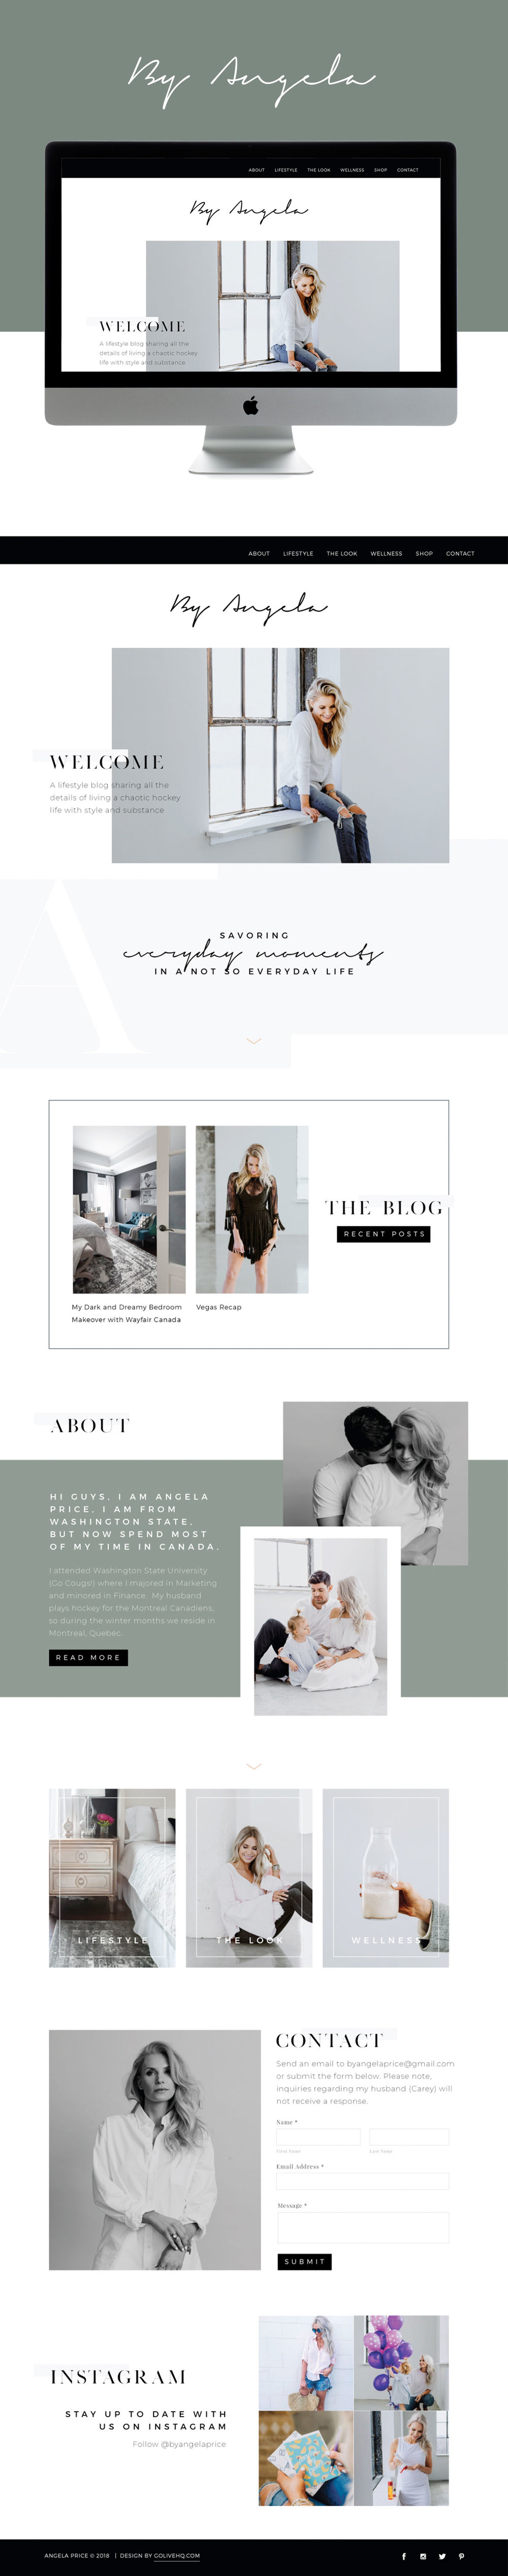 Modern, Sleek Website Design for Lifestyle Blogger | Design by Go Live HQ